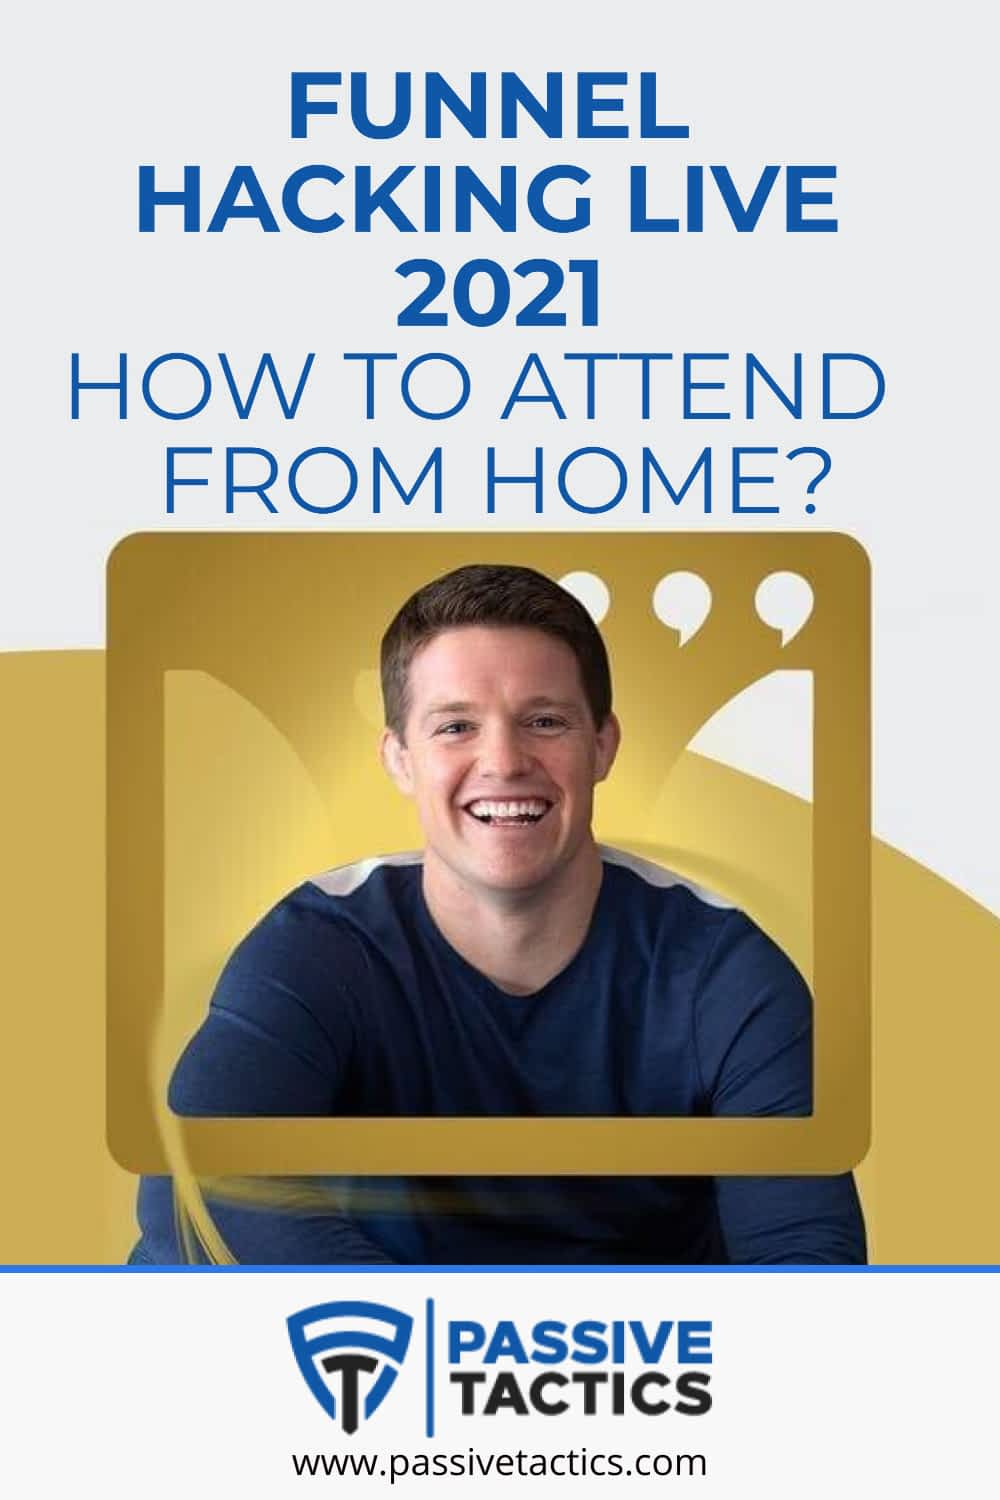 Funnel Hacking Live 2021: How To Attend From Home?